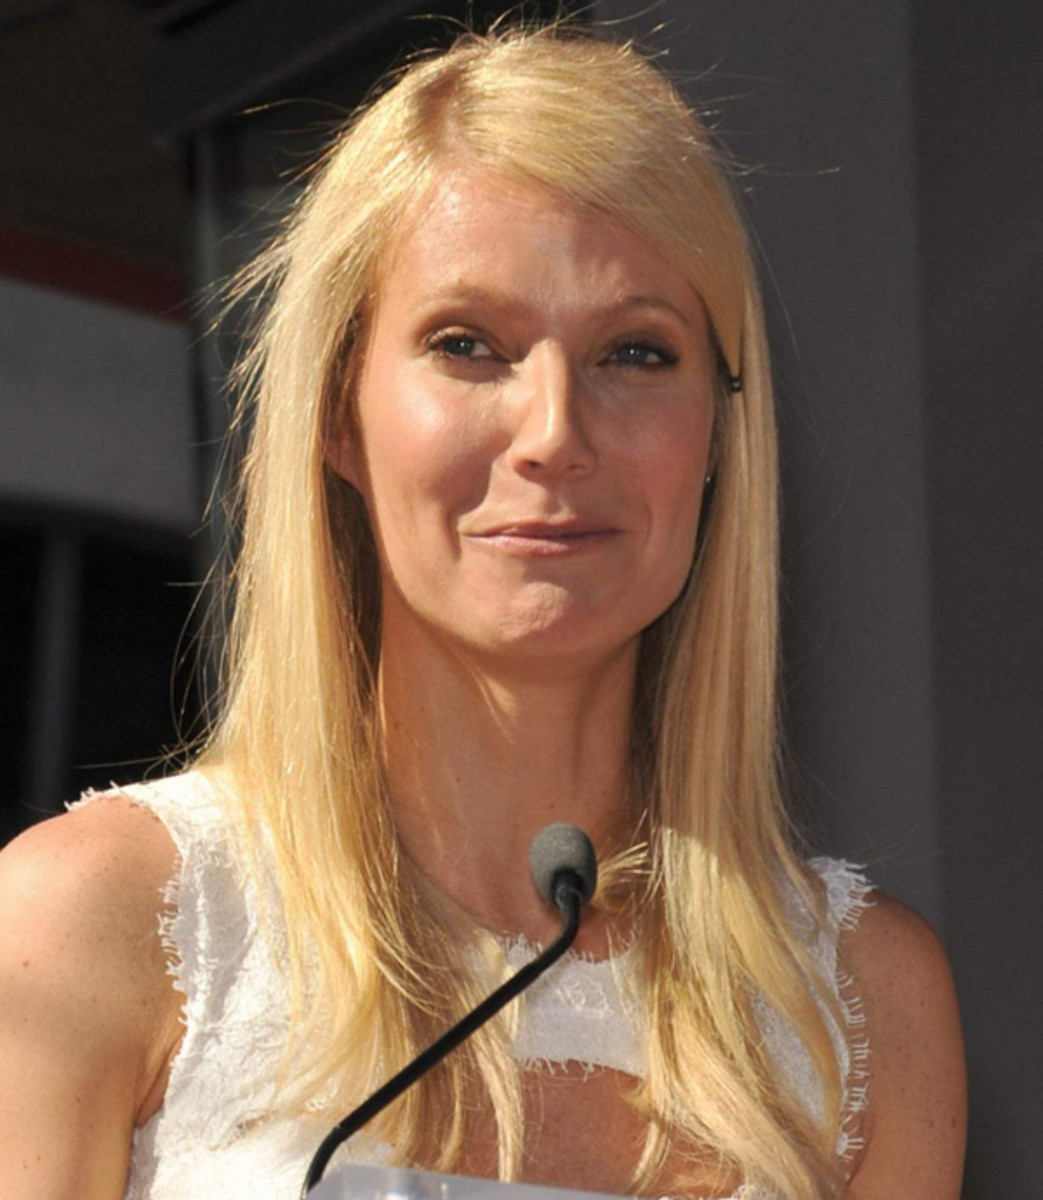 Gwyneth-Paltrow-Hollywood-Walk-of-Fame-2010-face-frozen